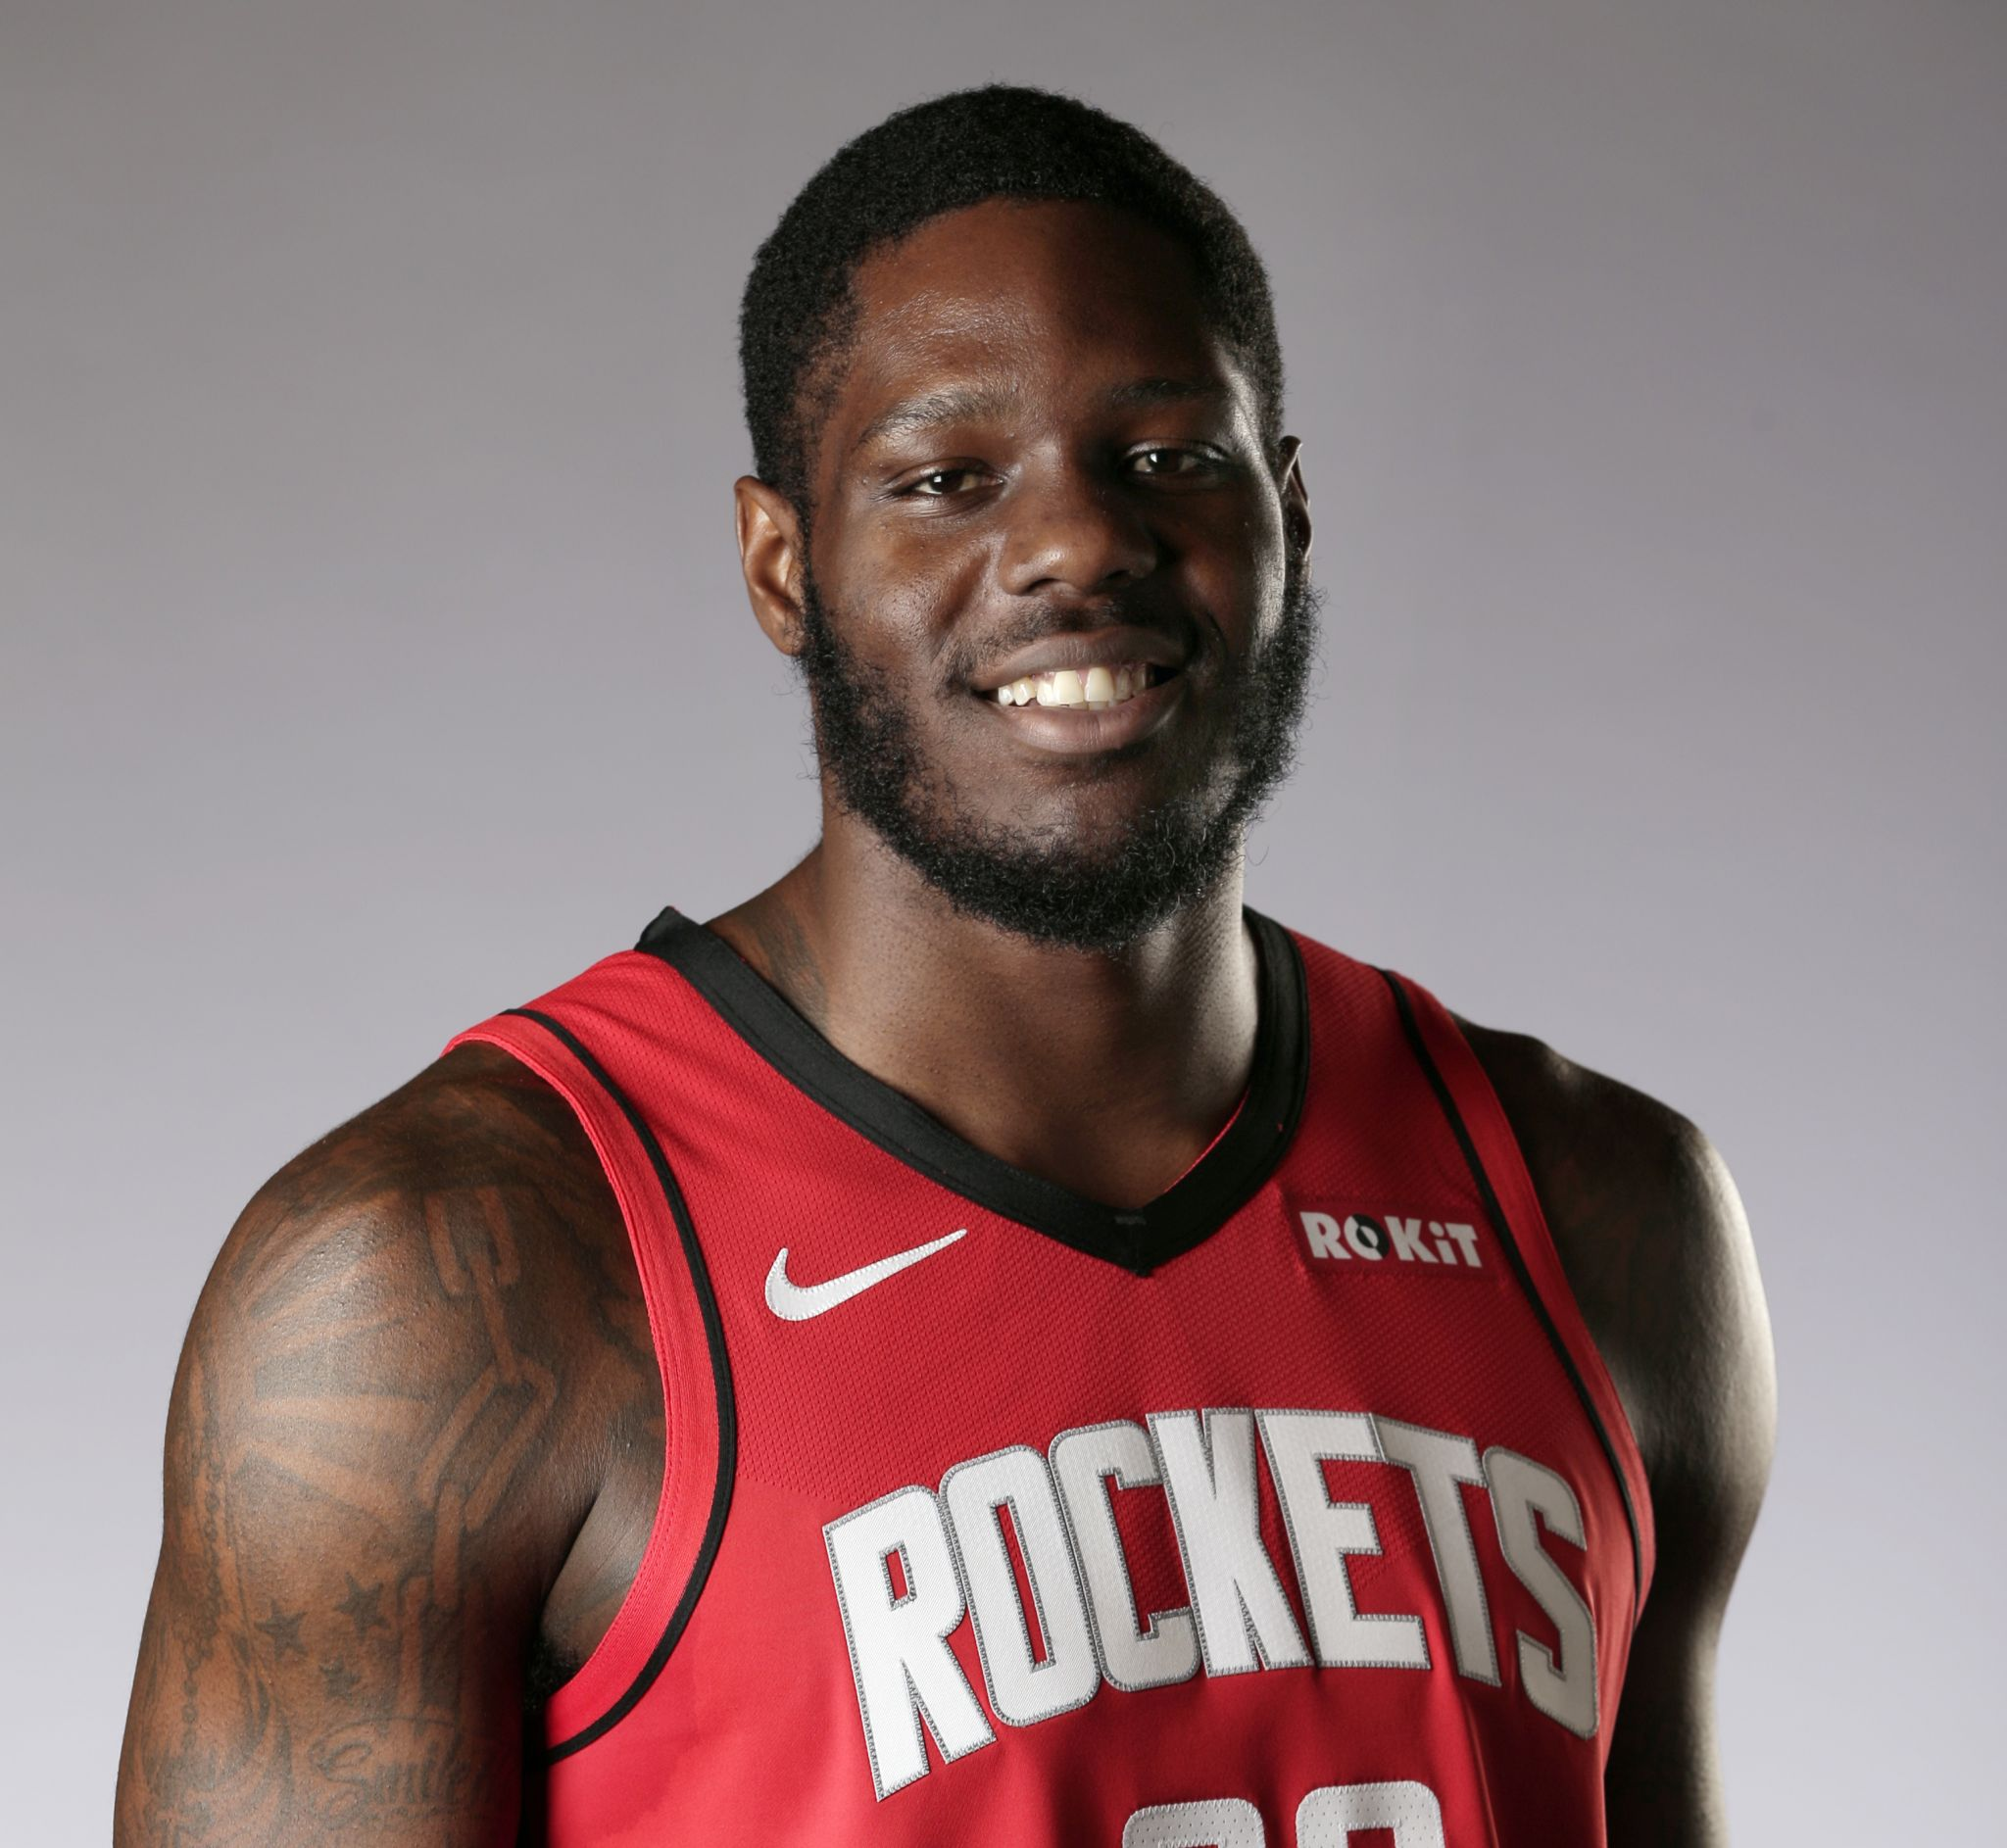 Patience a virtue for former No. 1 pick Anthony Bennett, who sat out Rockets' training camp Saturday